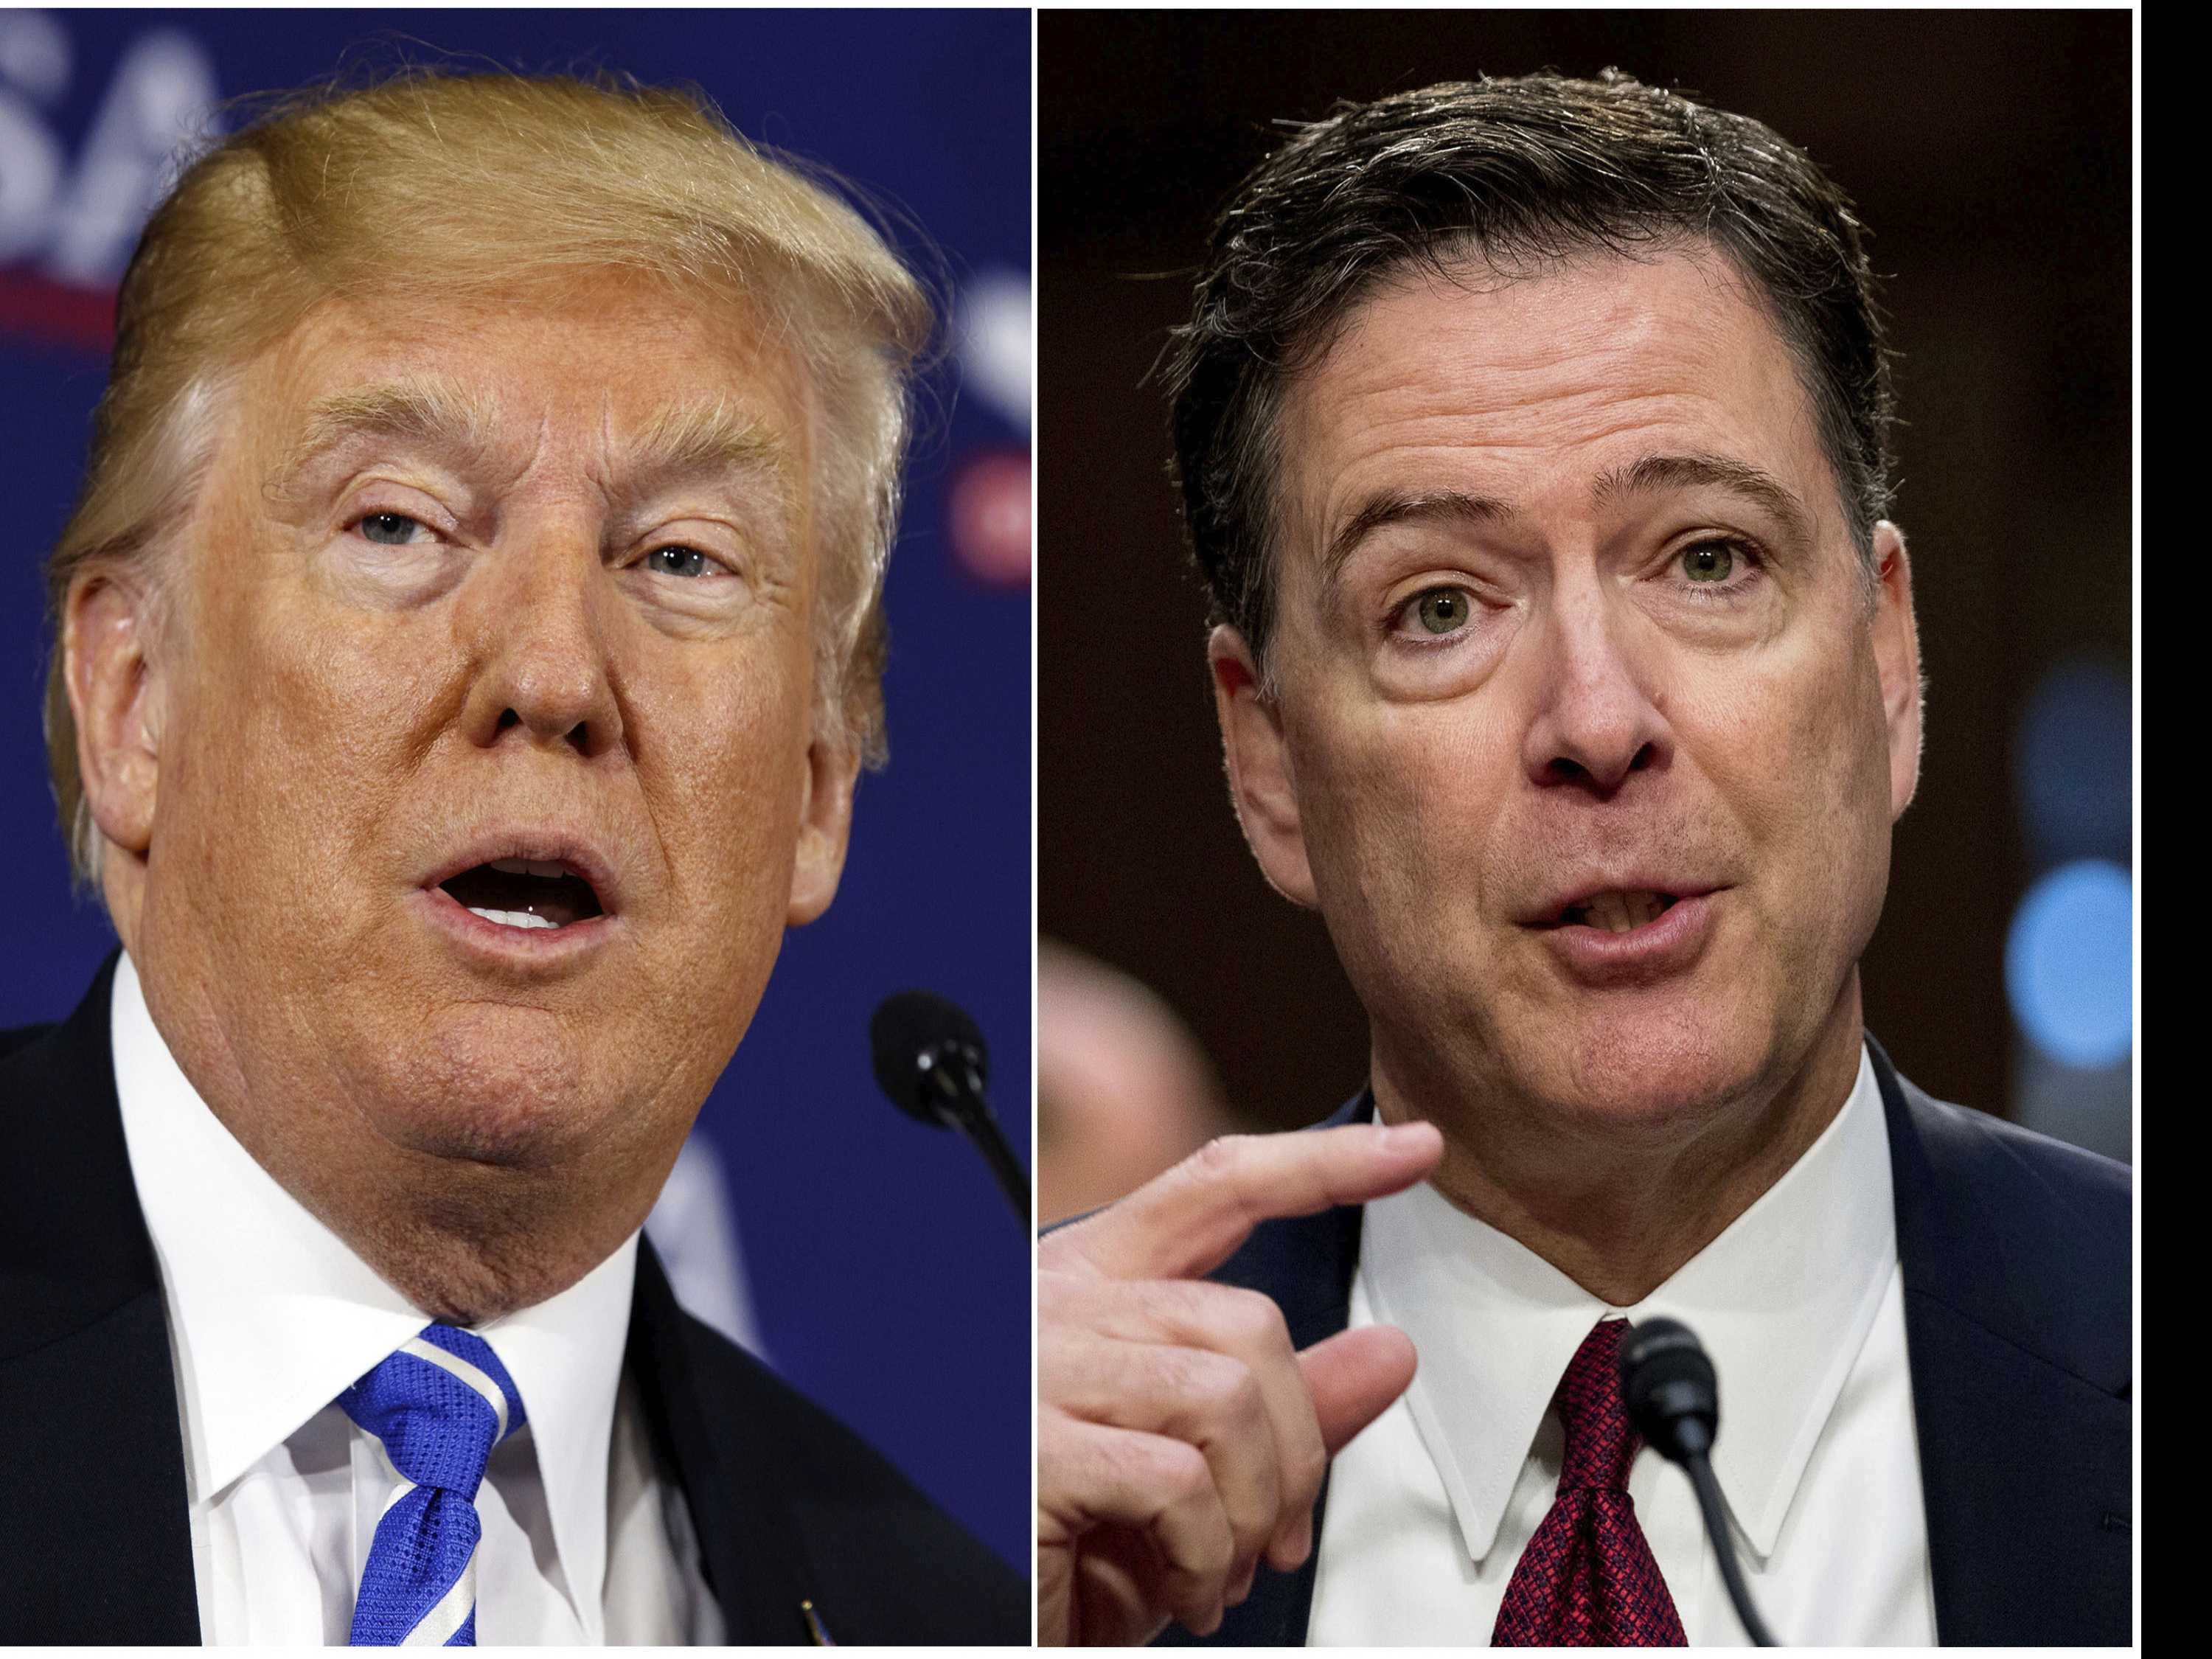 AP FACT CHECK: Trump Twists Comey Role in Clinton Disclosure